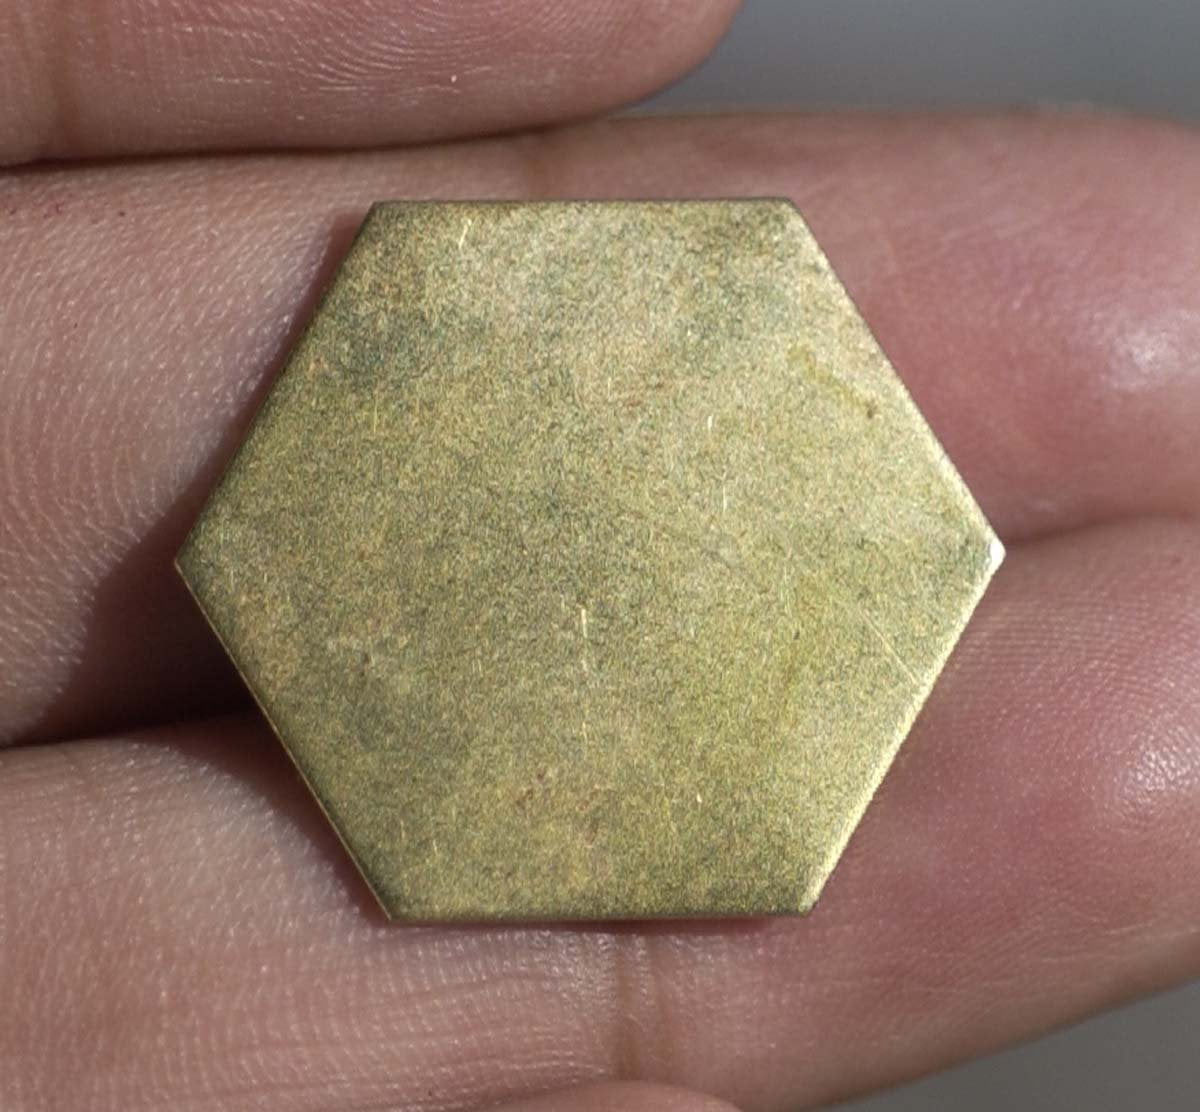 Brass Hexagon  20g 20mm Blank Cutout for Metalworking Soldering Stamping Texturing Blanks